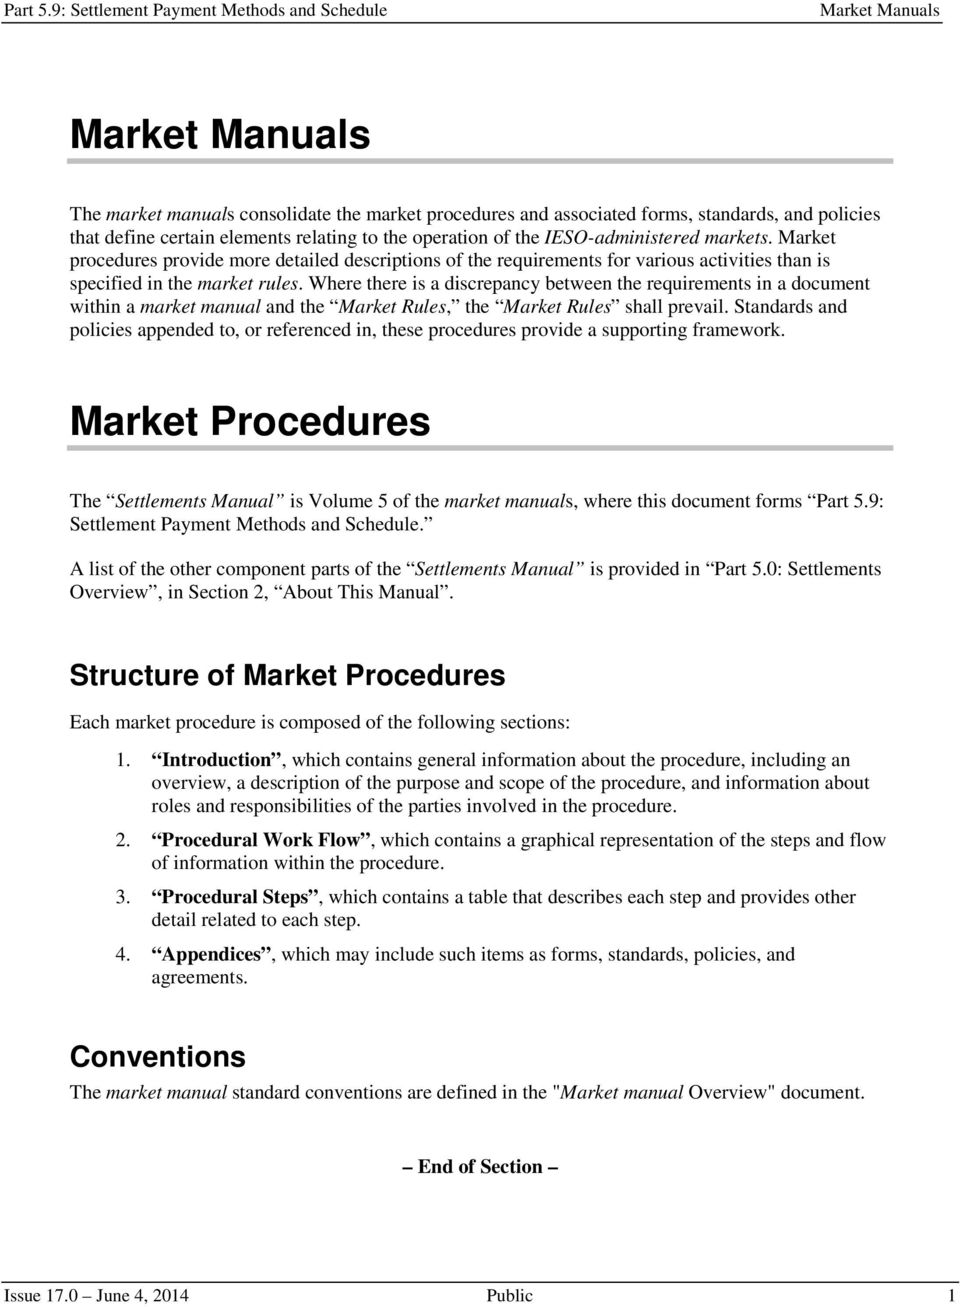 Where there is a discrepancy between the requirements in a document within a market manual and the Market Rules, the Market Rules shall prevail.